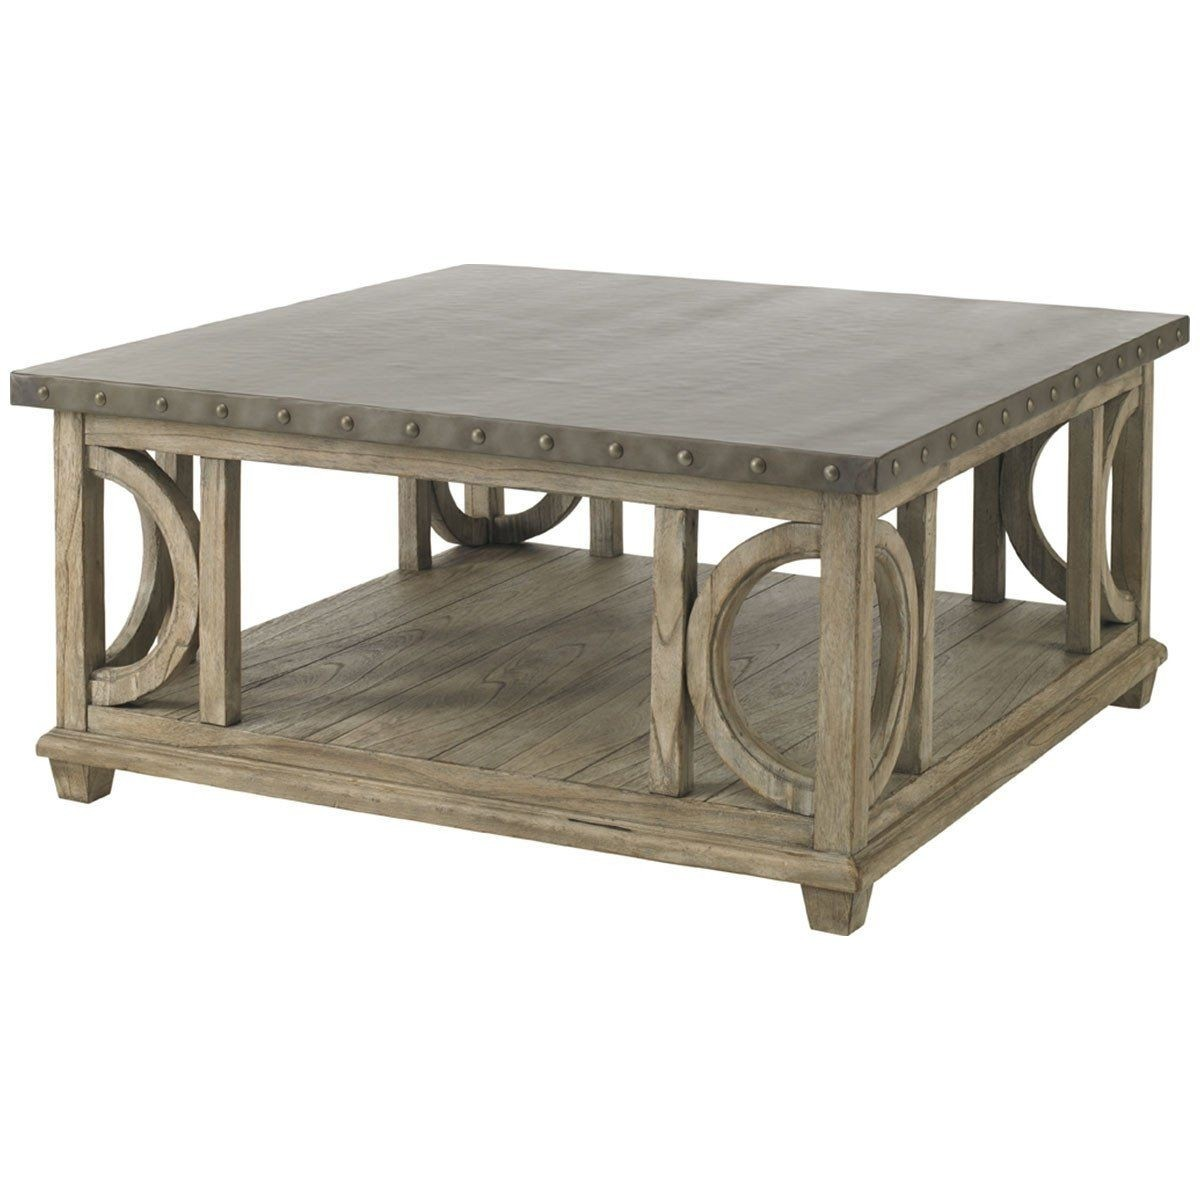 Wonderful Large Square Coffee Table Wyatt 40 Square Cocktail Table Gray